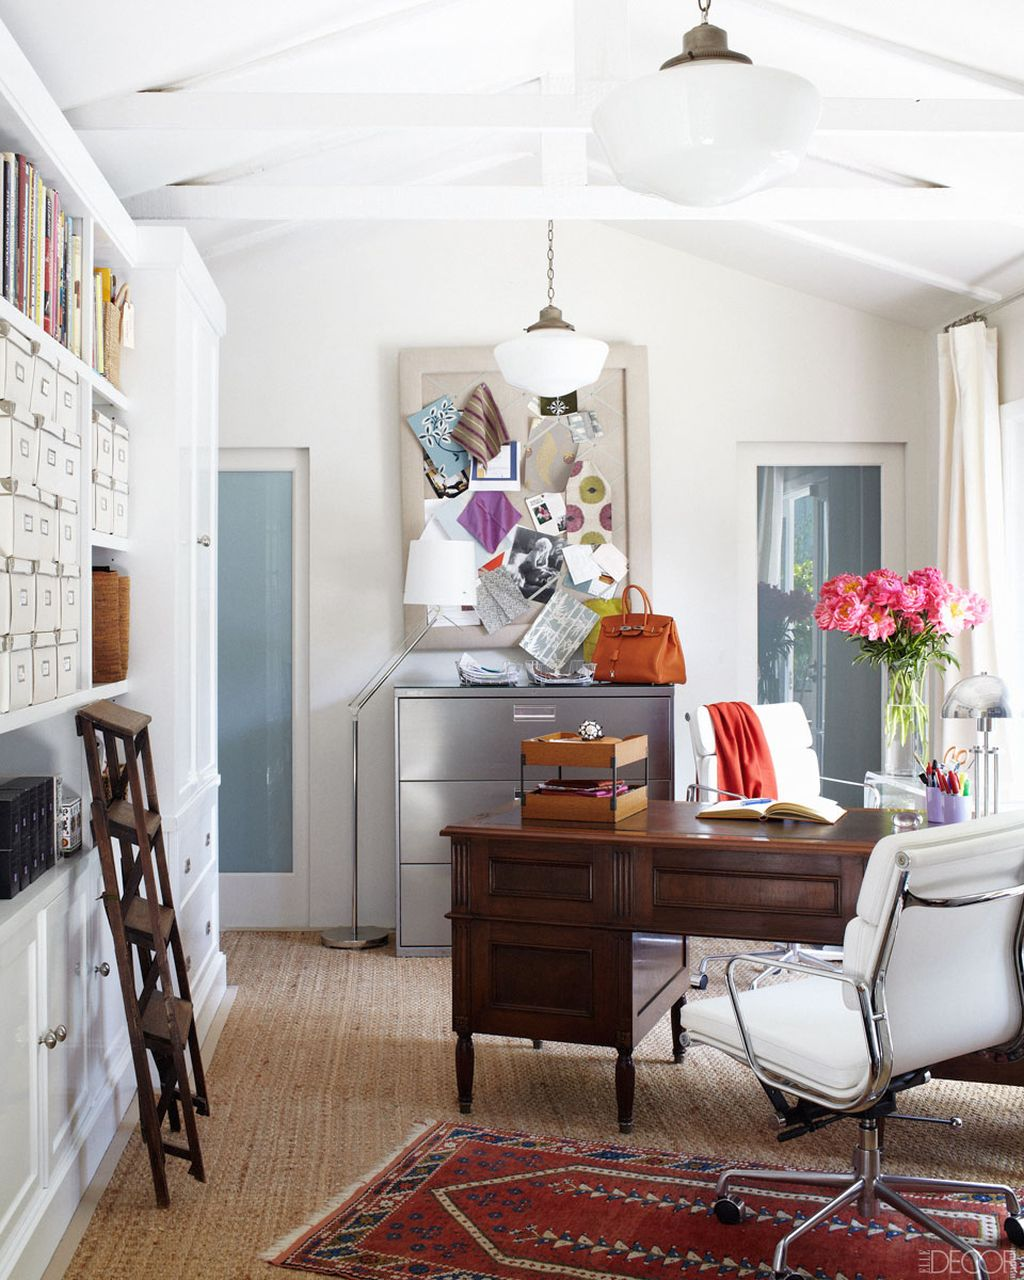 20 inspiring home office design ideas for small spaces Home design ideas for small spaces